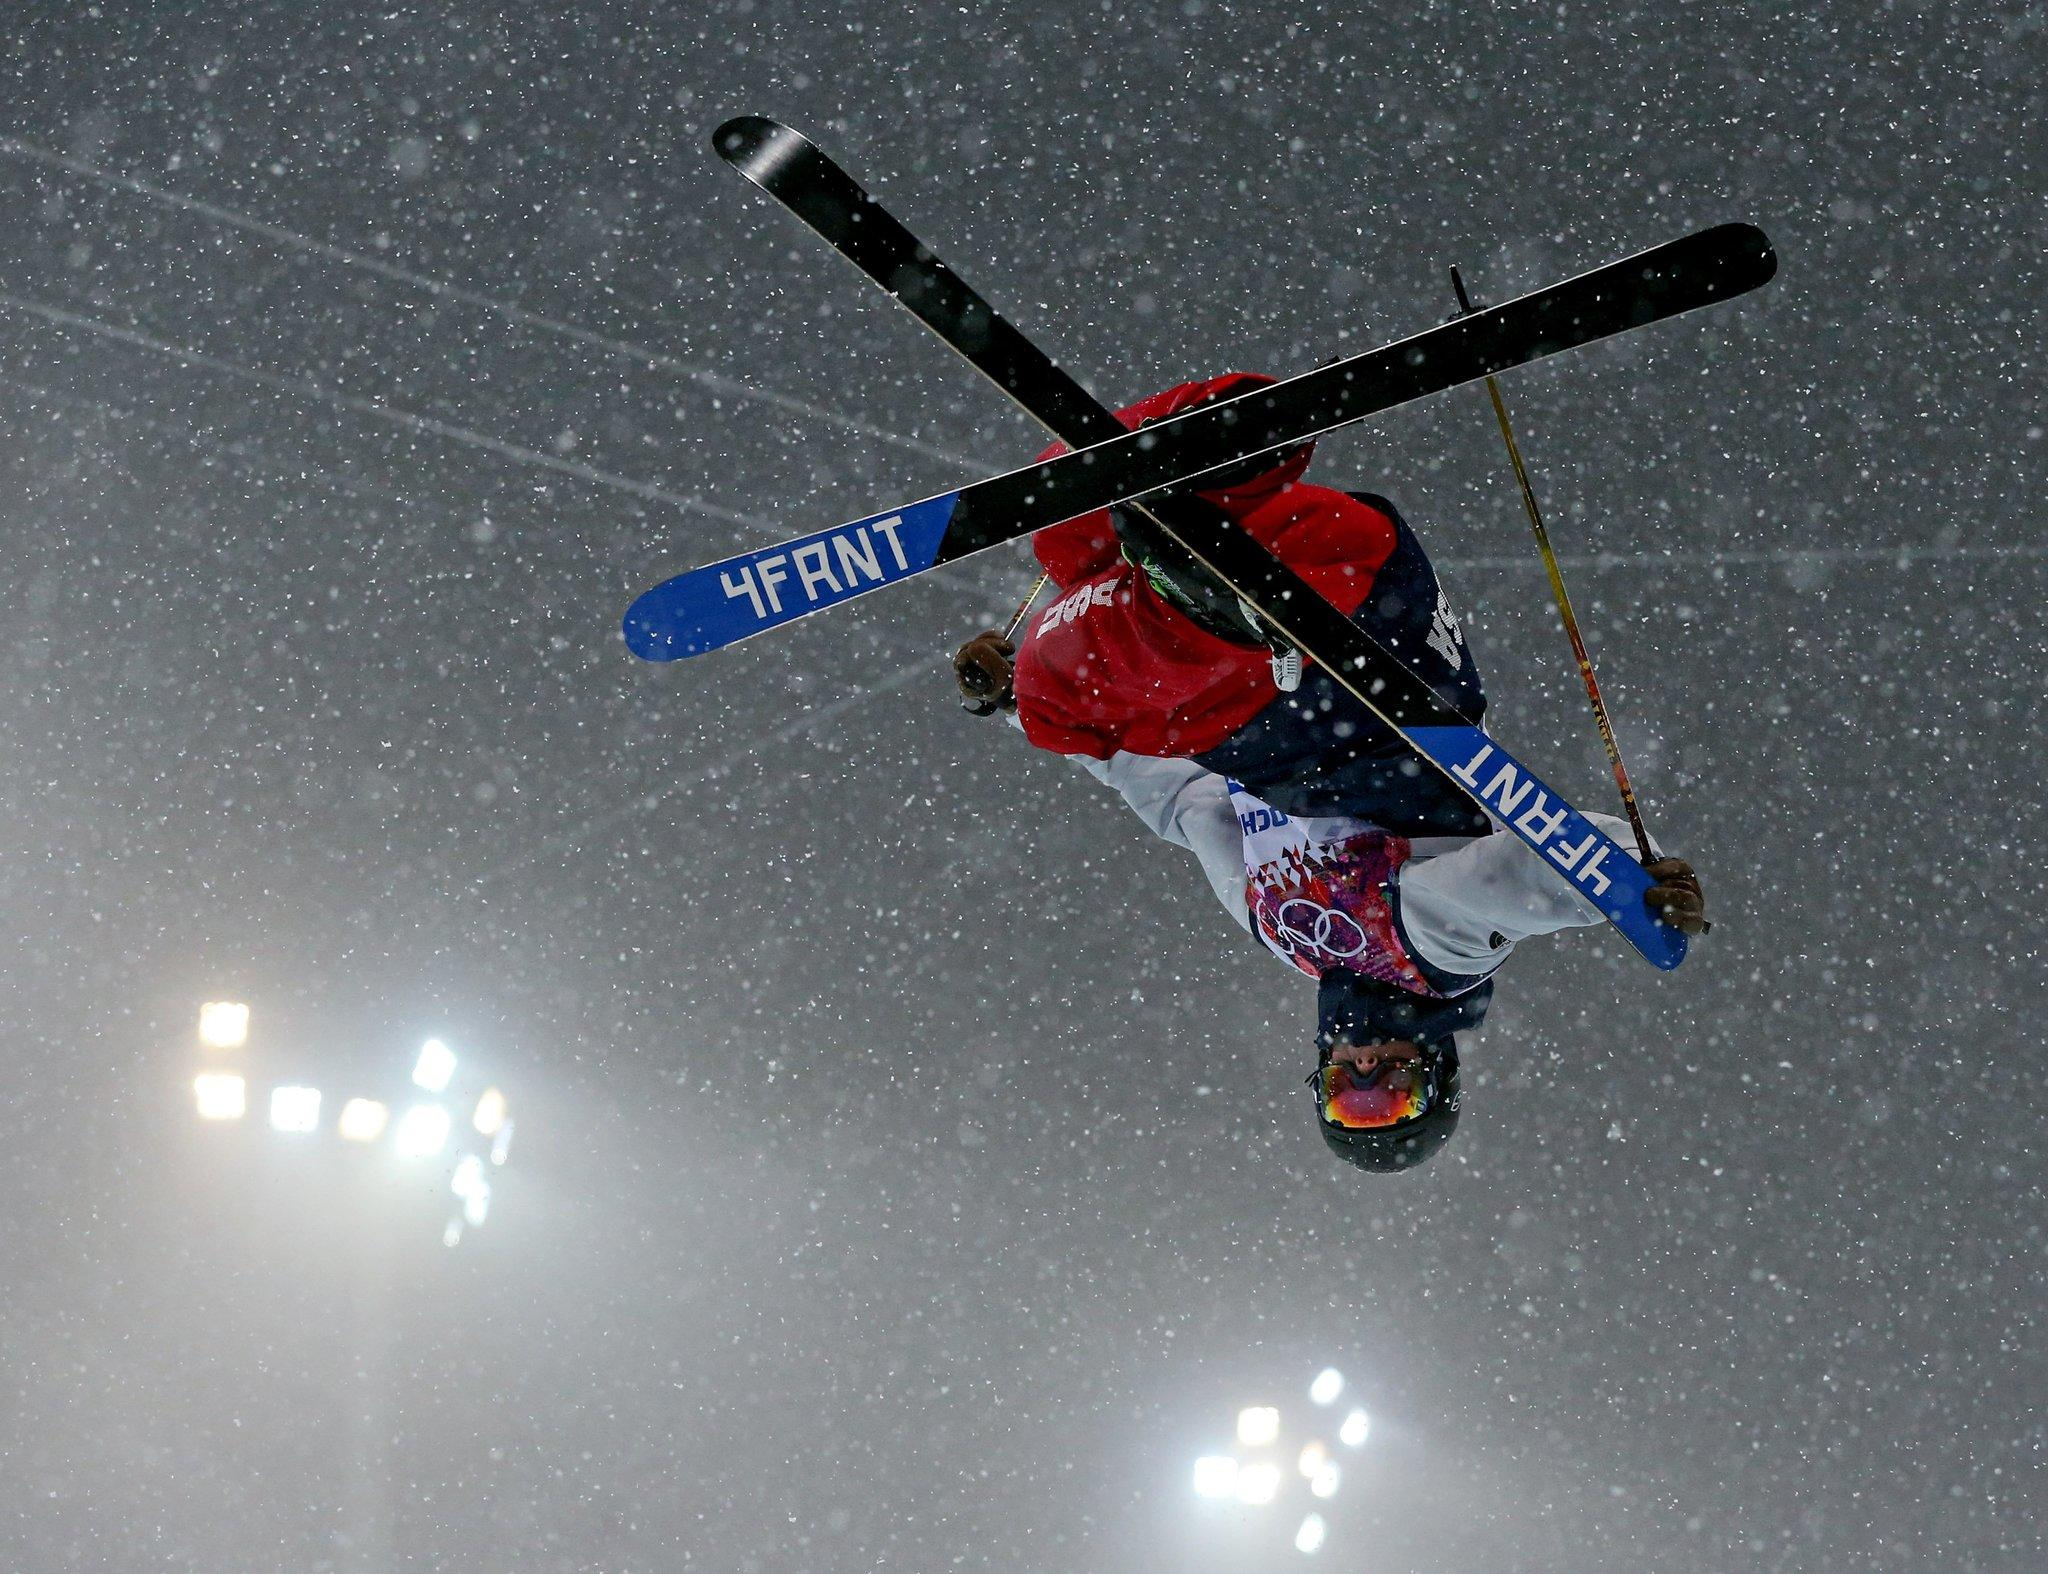 David Wise of the USA skis on his way to a gold medal in the men's ski halfpipe at Rosa Khutor Extreme Park.